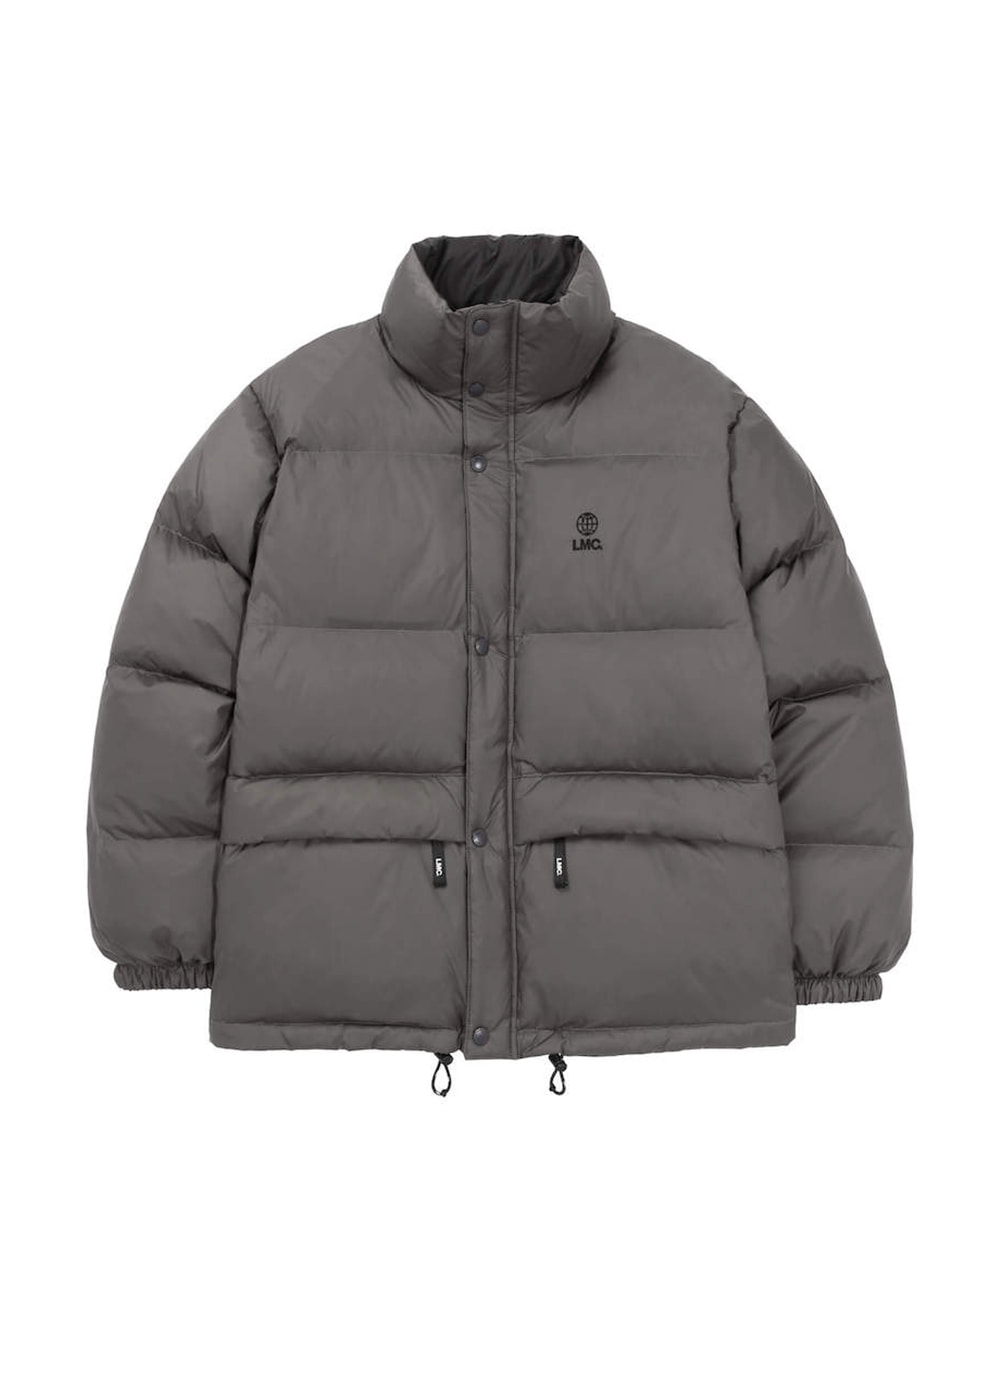 LMC REVERSIBLE DOWN PARKA gray